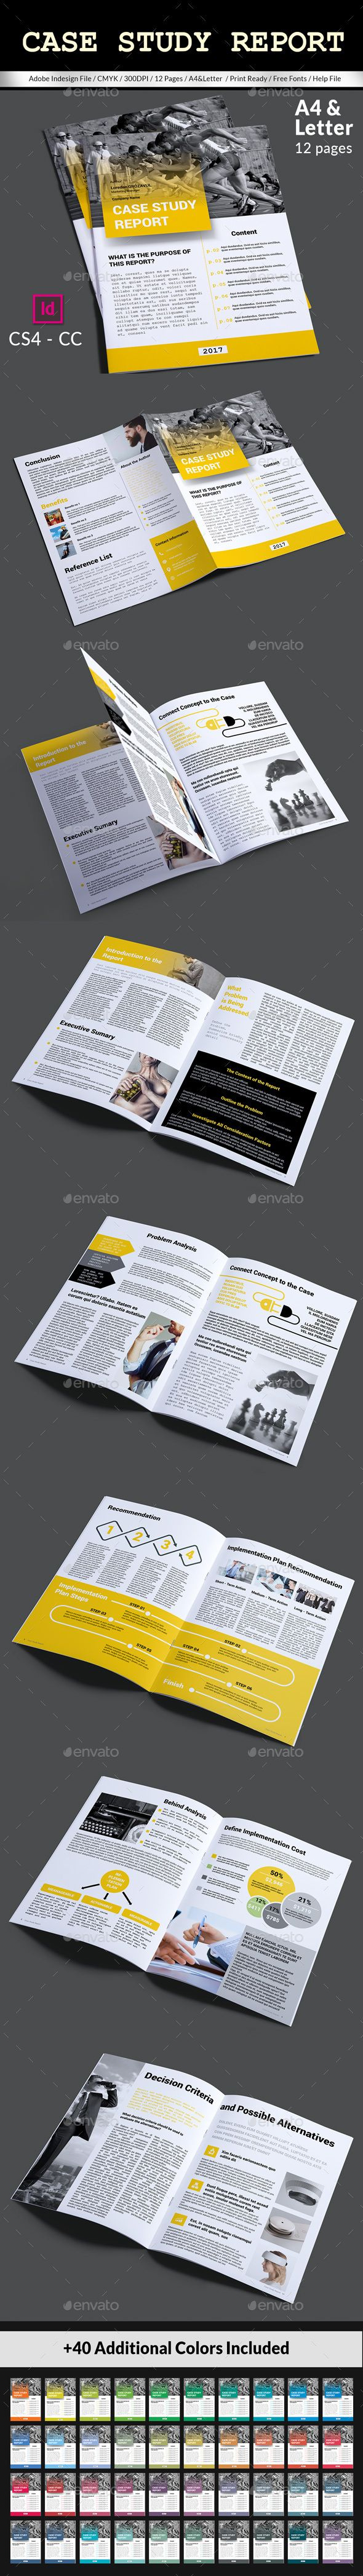 Case Study Report Template by magic_reflection Modern & Creative Case Study template design.Specifications: Indesign INDD (CC&CS4), IDML & PDF File 40 1 color set A4 & Letter Si